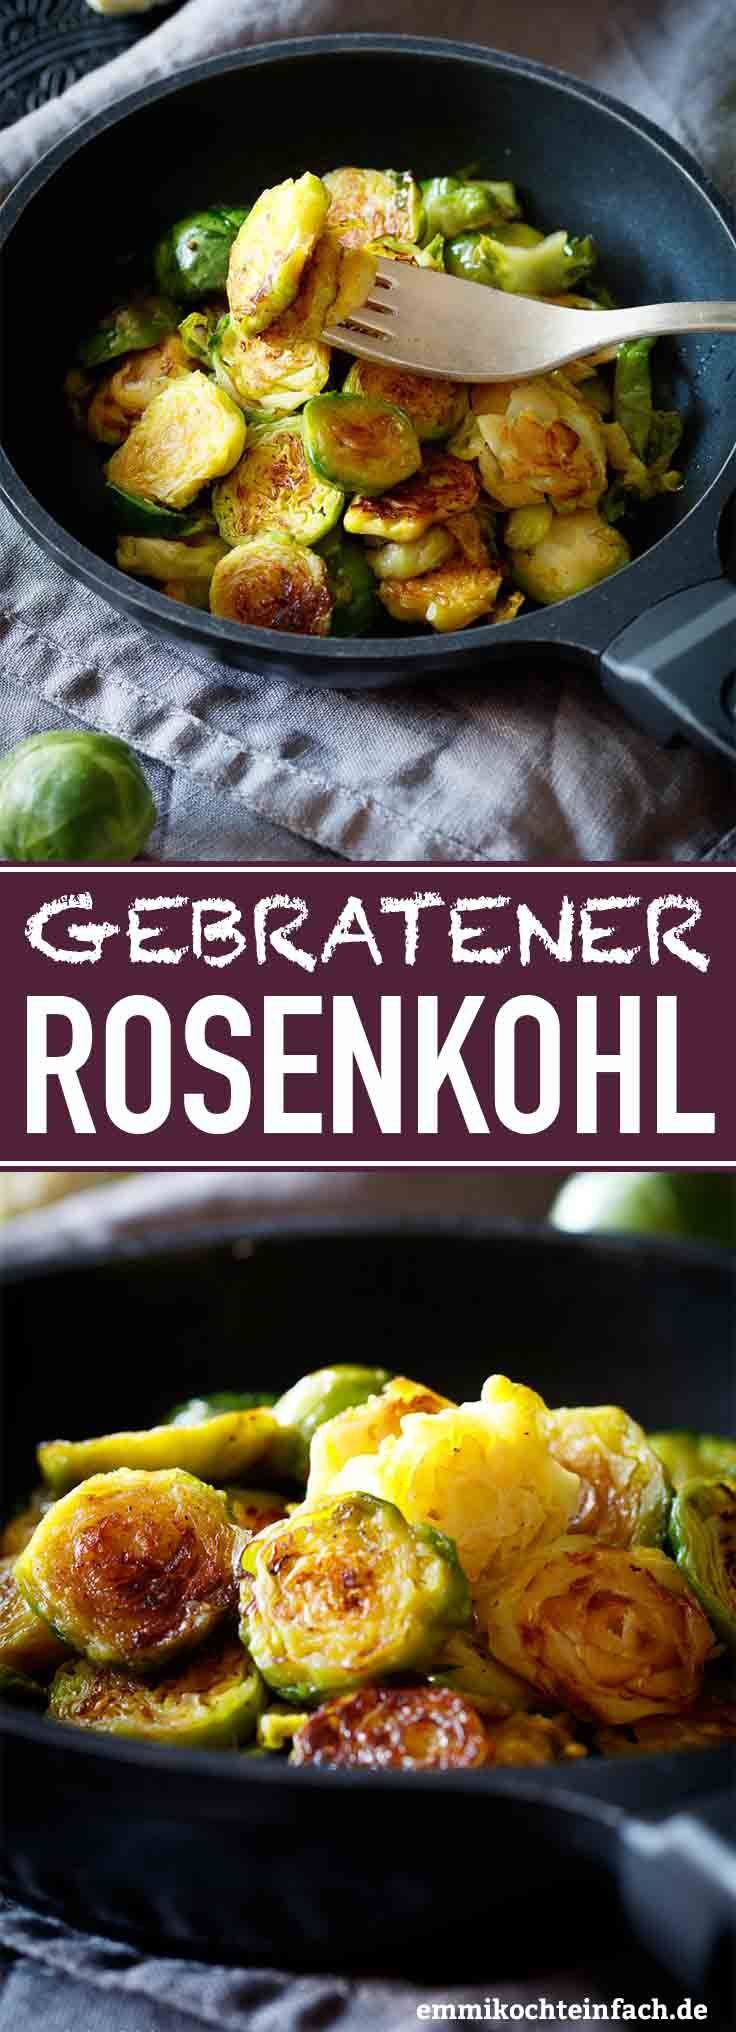 Fried Brussels sprouts   – Essen